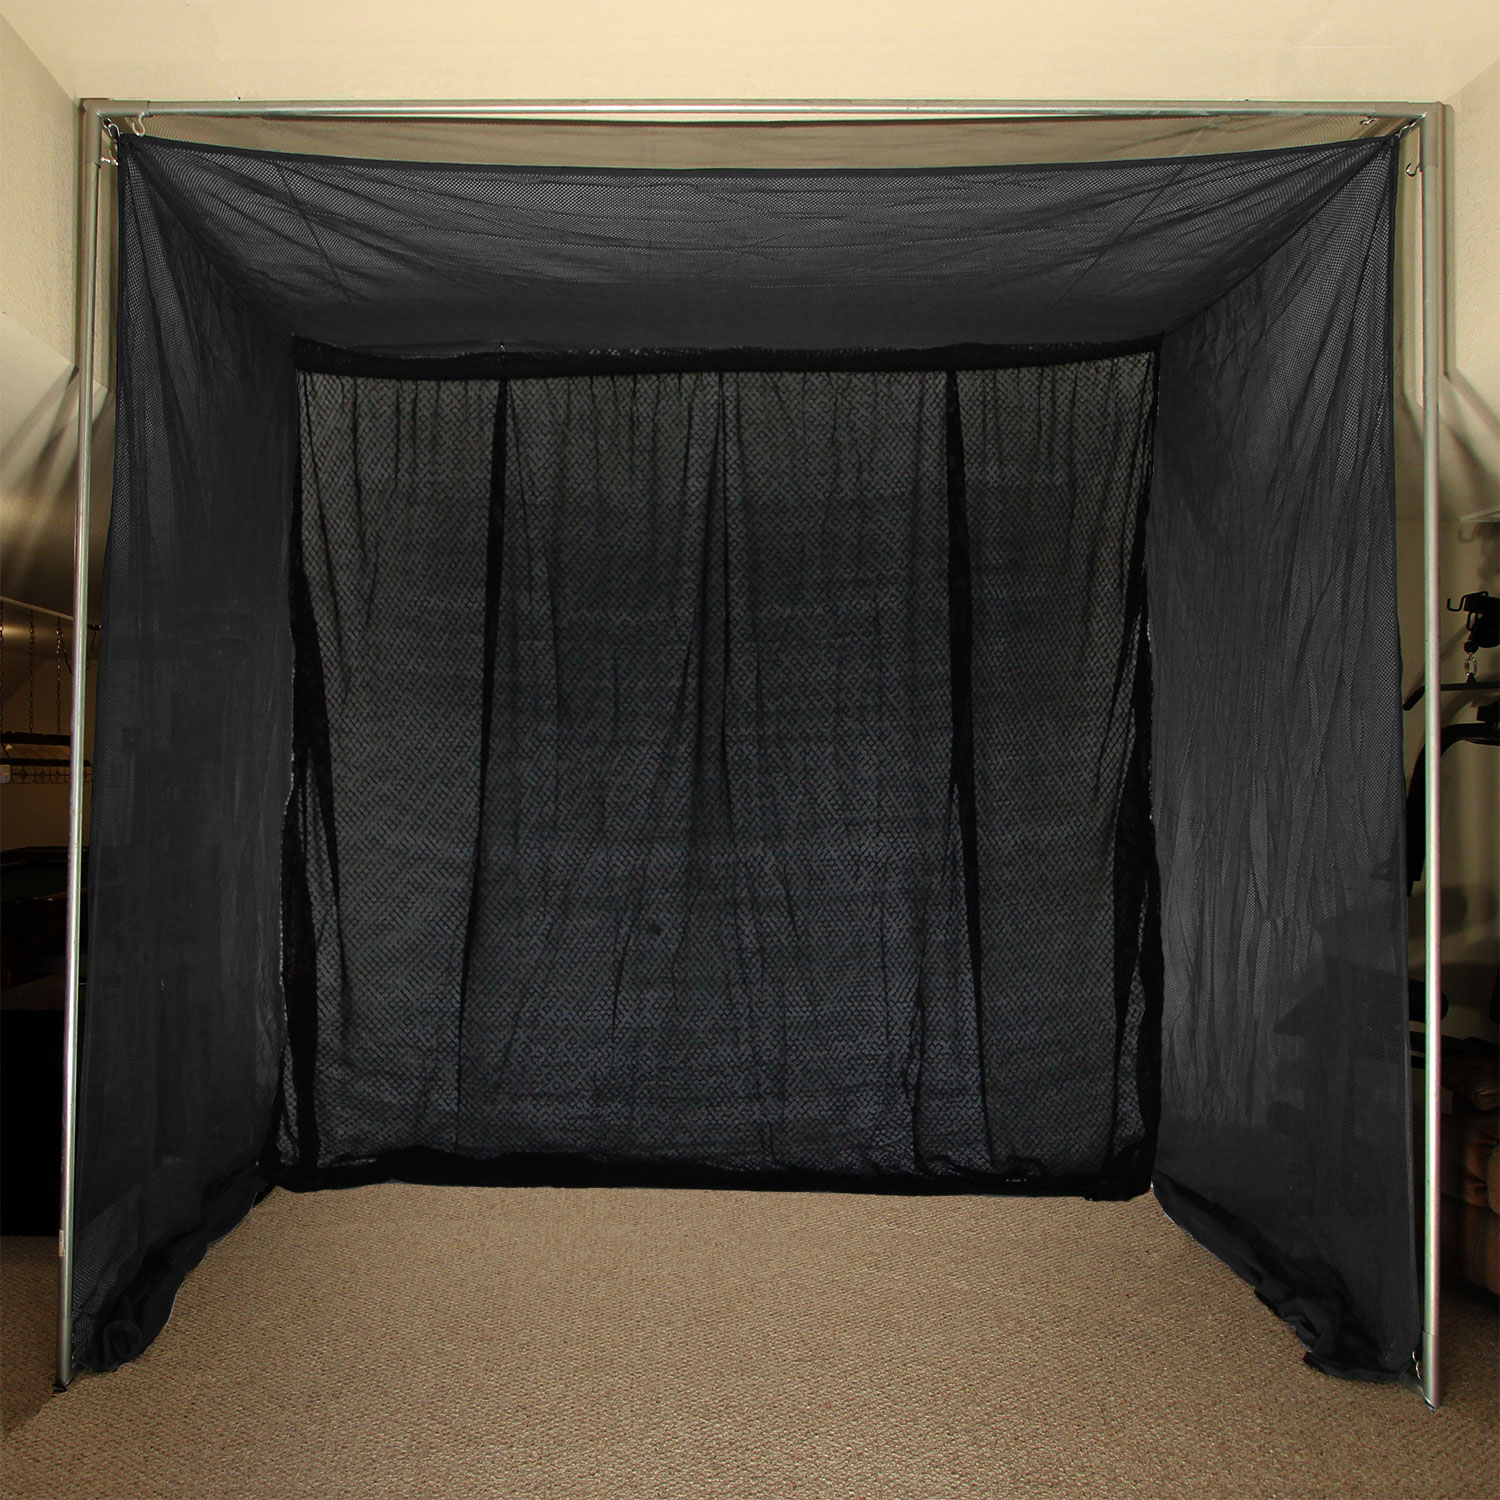 Packaging or Promotional image for Cimarron 5x10x10 Clubhouse Archery Golf Net and Complete Frame